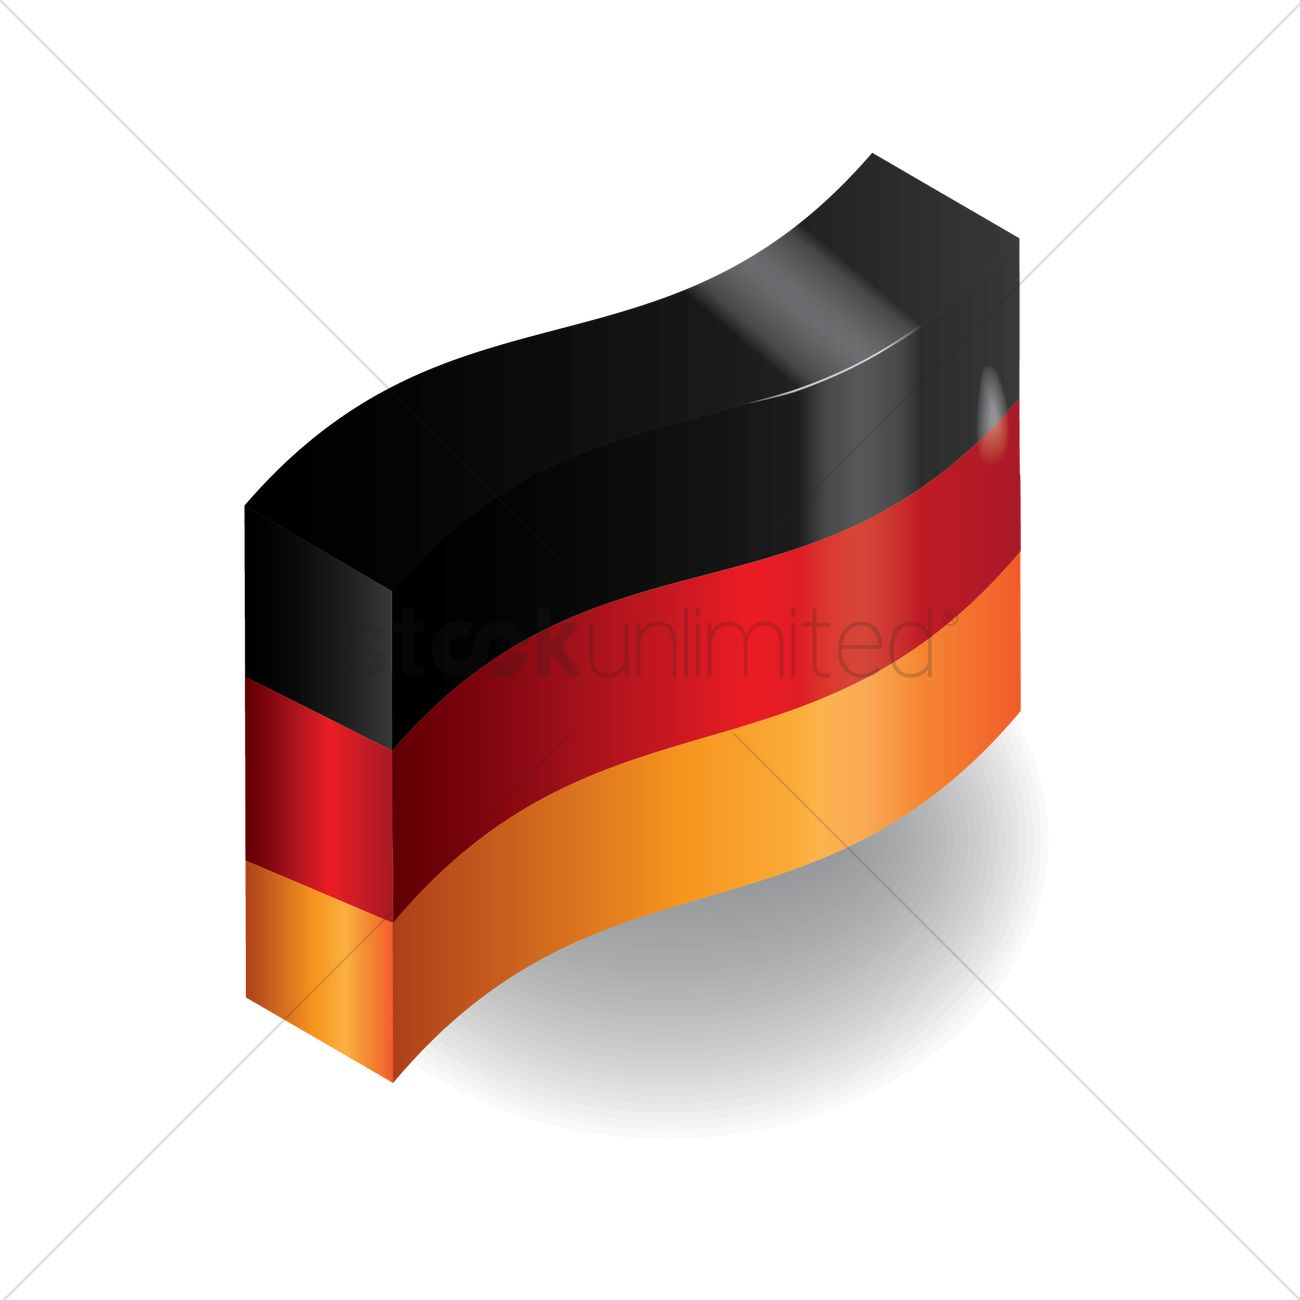 Abstract german flag design Vector Image - 1954279 | StockUnlimited